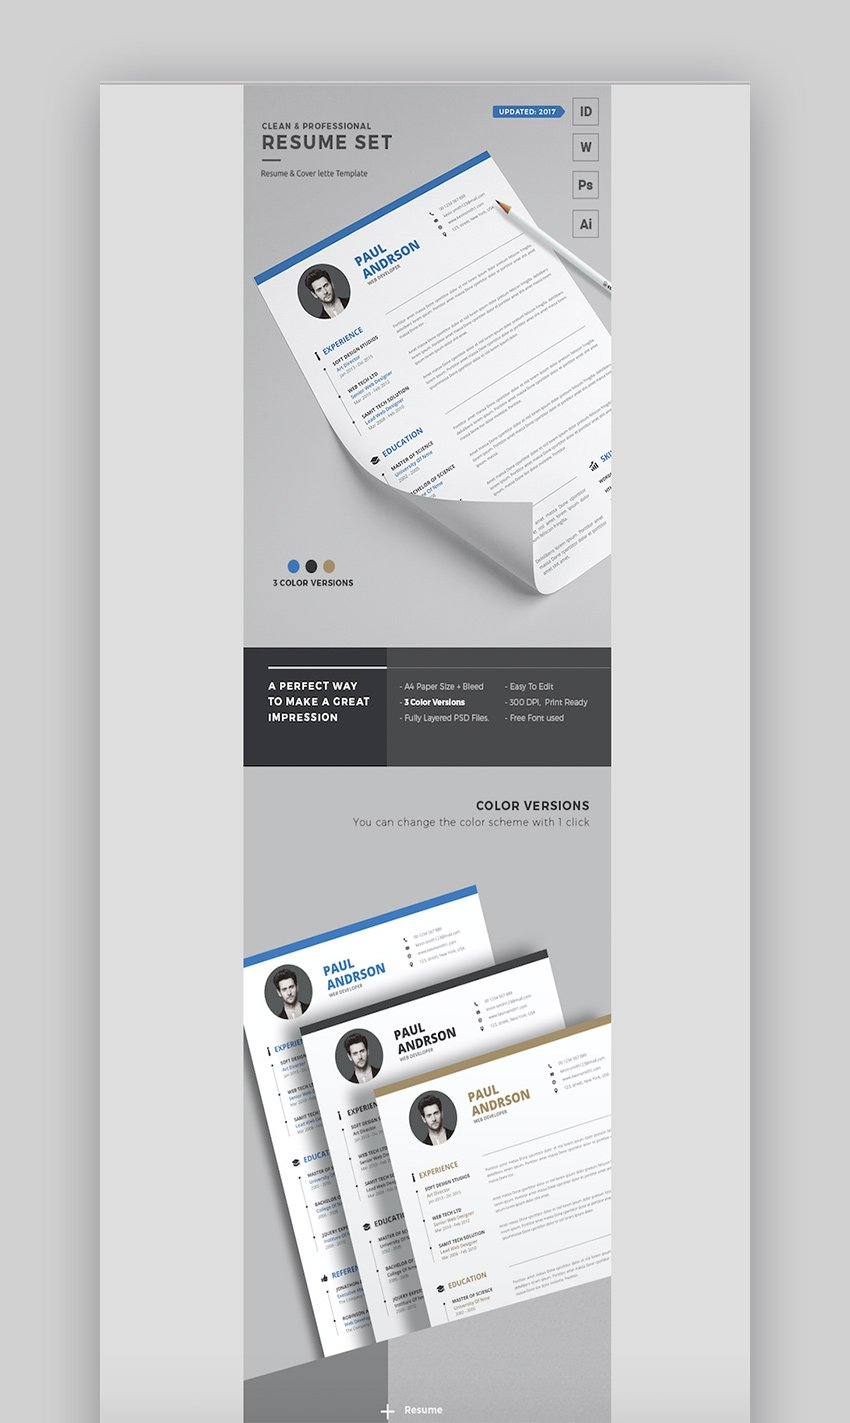 Clean Professional Resume Template